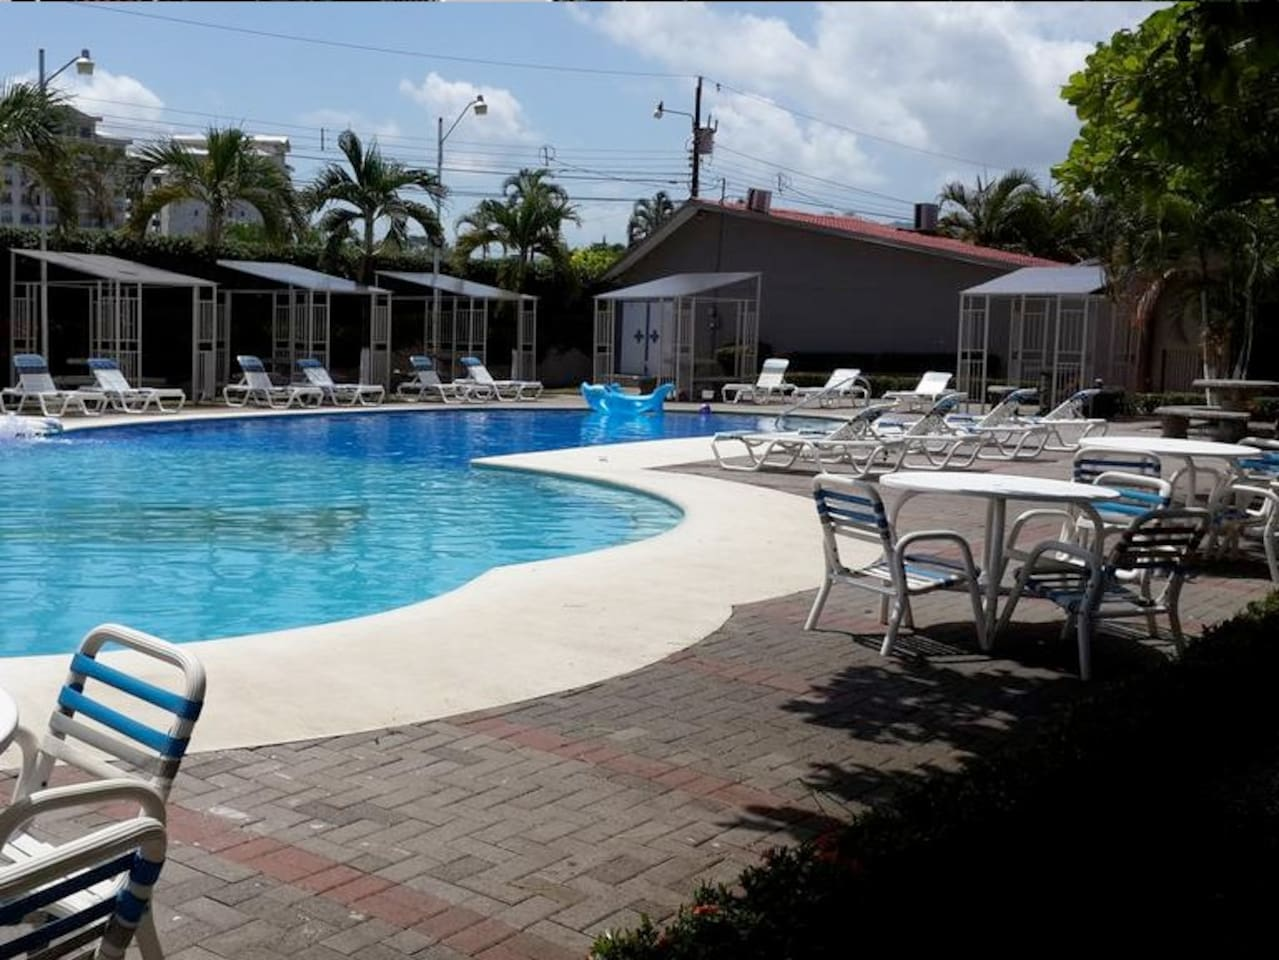 Pool, 24/7 security, BBQ, green areas